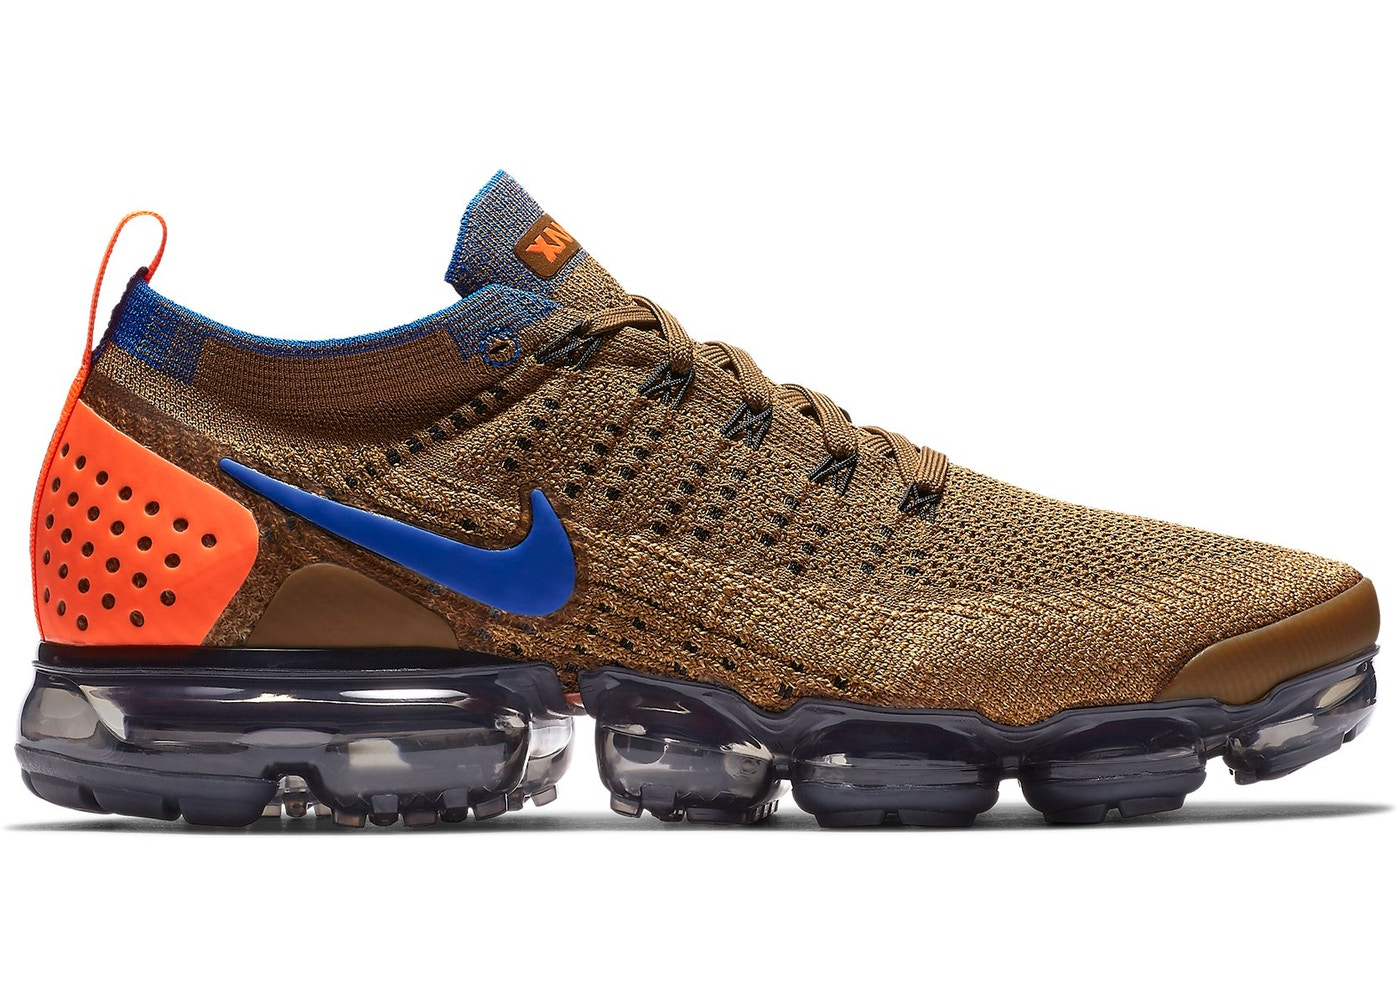 0b04a457df9 Buy Nike Air Max VaporMax Shoes   Deadstock Sneakers